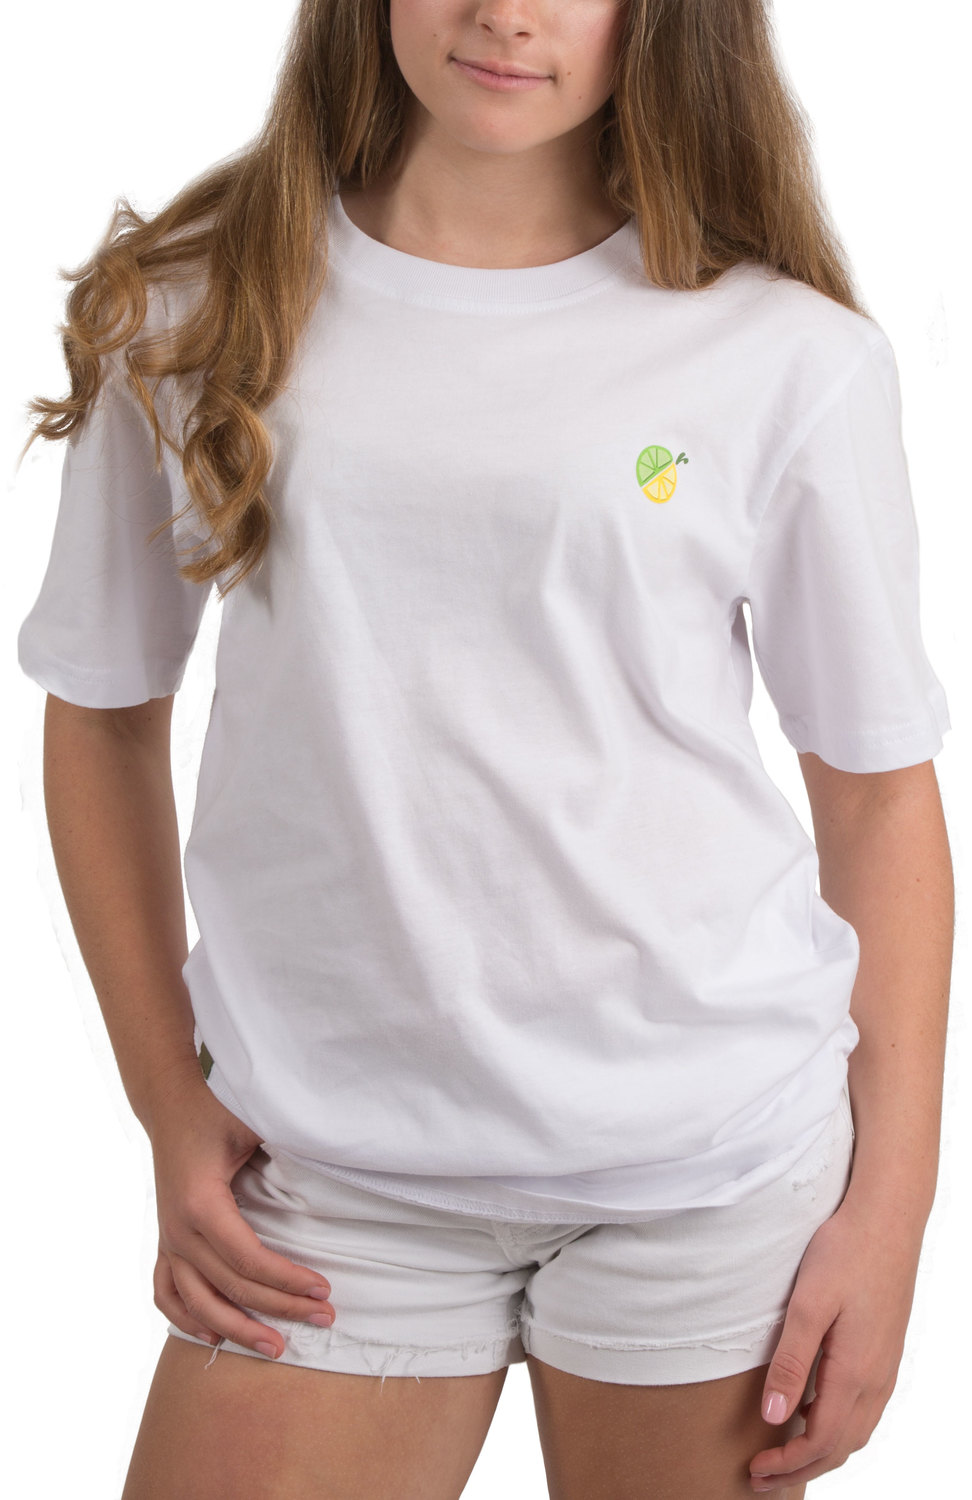 Limes or Lemons by Livin' on the Wedge - Limes or Lemons - S- 100% Cotton Soft Wash Unisex T-Shirt